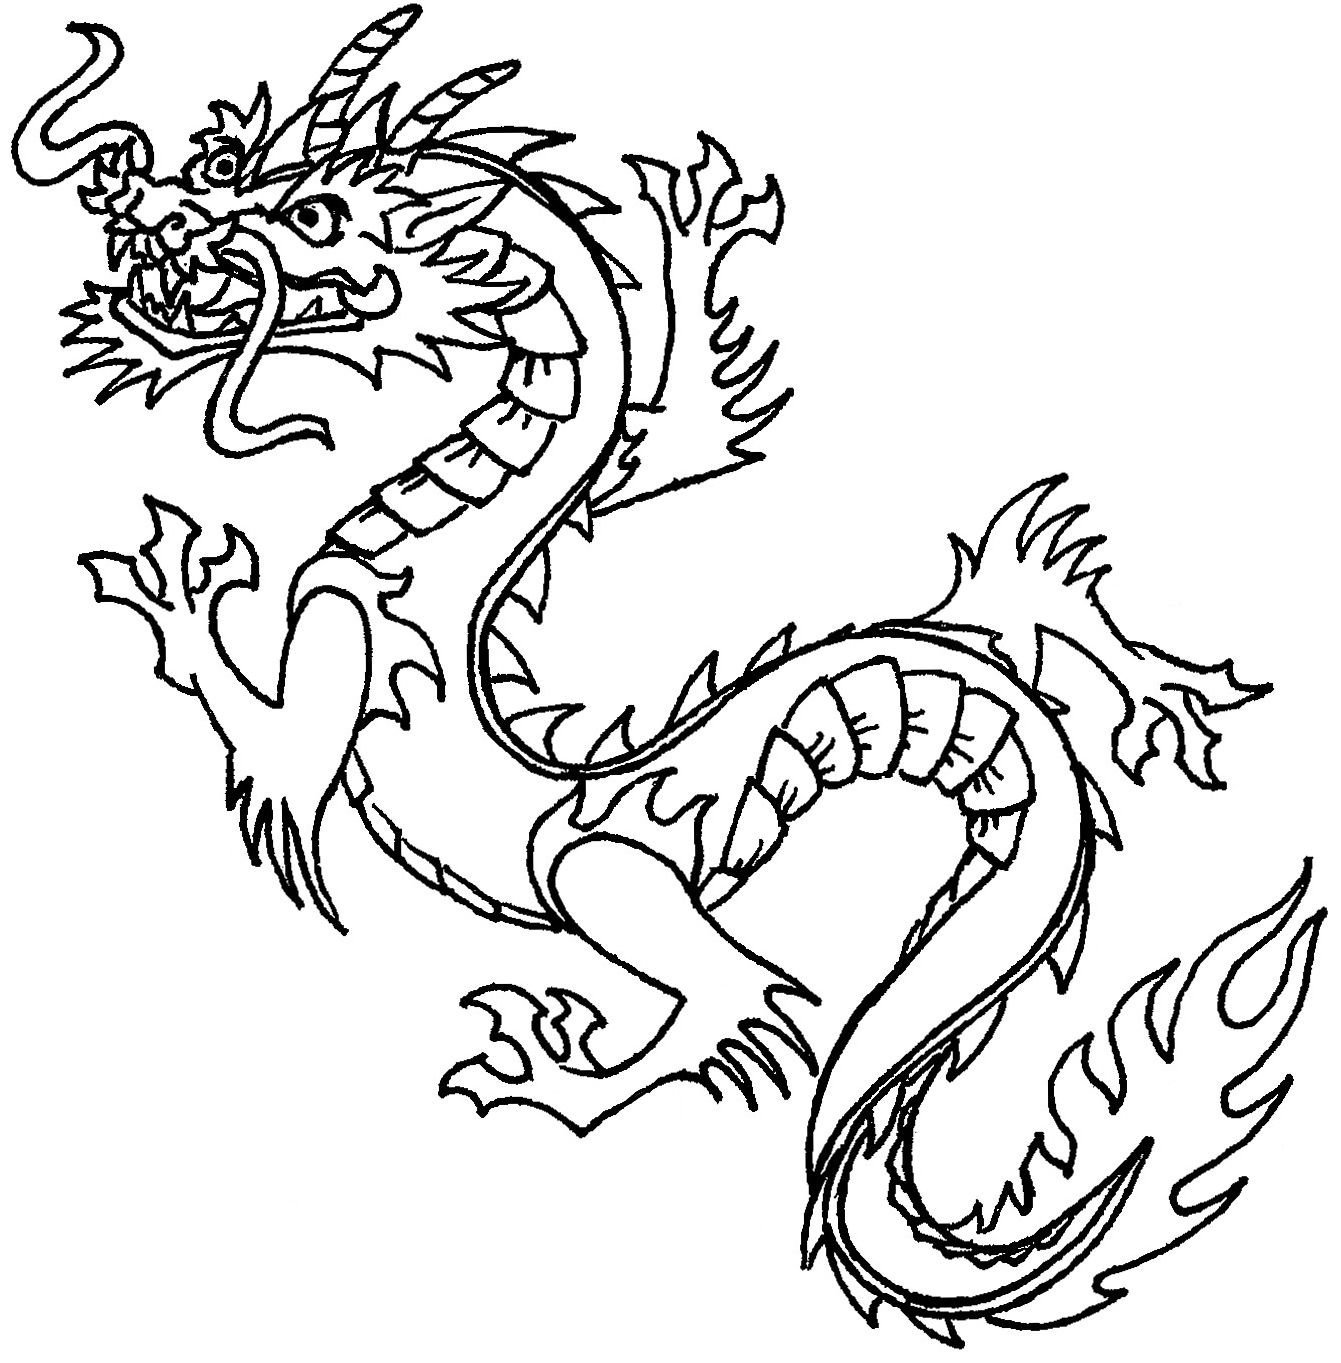 Free Printable Chinese Dragon Coloring Pages For Kids   Stencils - Free Printable Chinese Dragon Coloring Pages